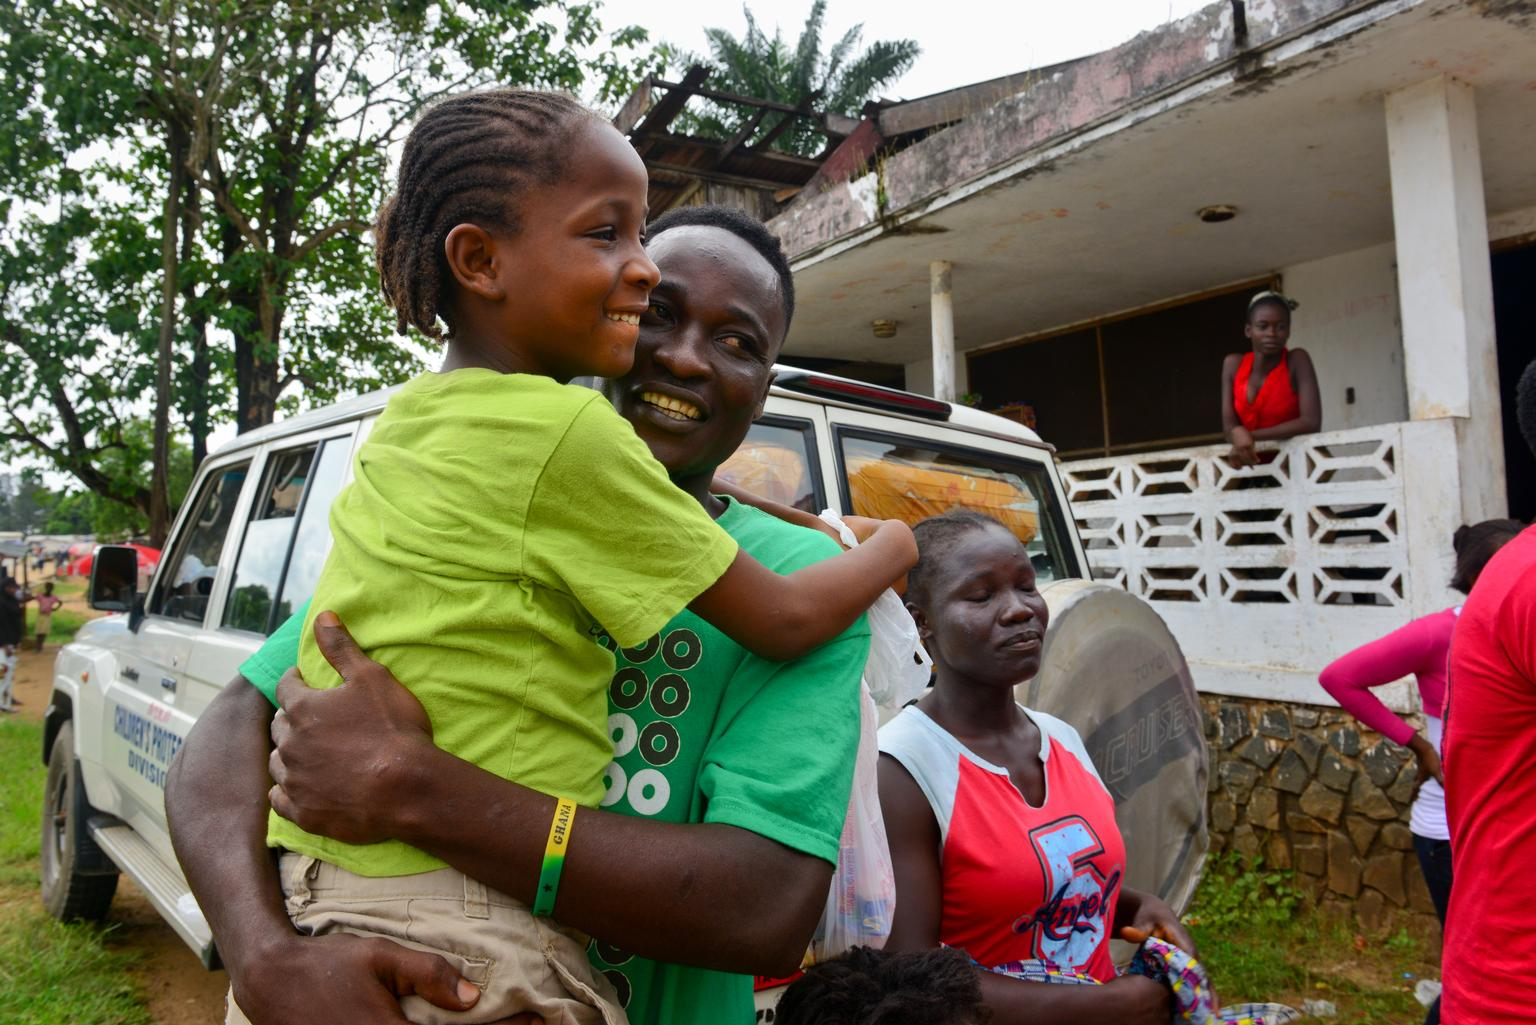 Nine-year-old Mercy, an Ebola orphan in Monrovia, Liberia, is reunited with her older brother outside a UNICEF-supported interim care center.